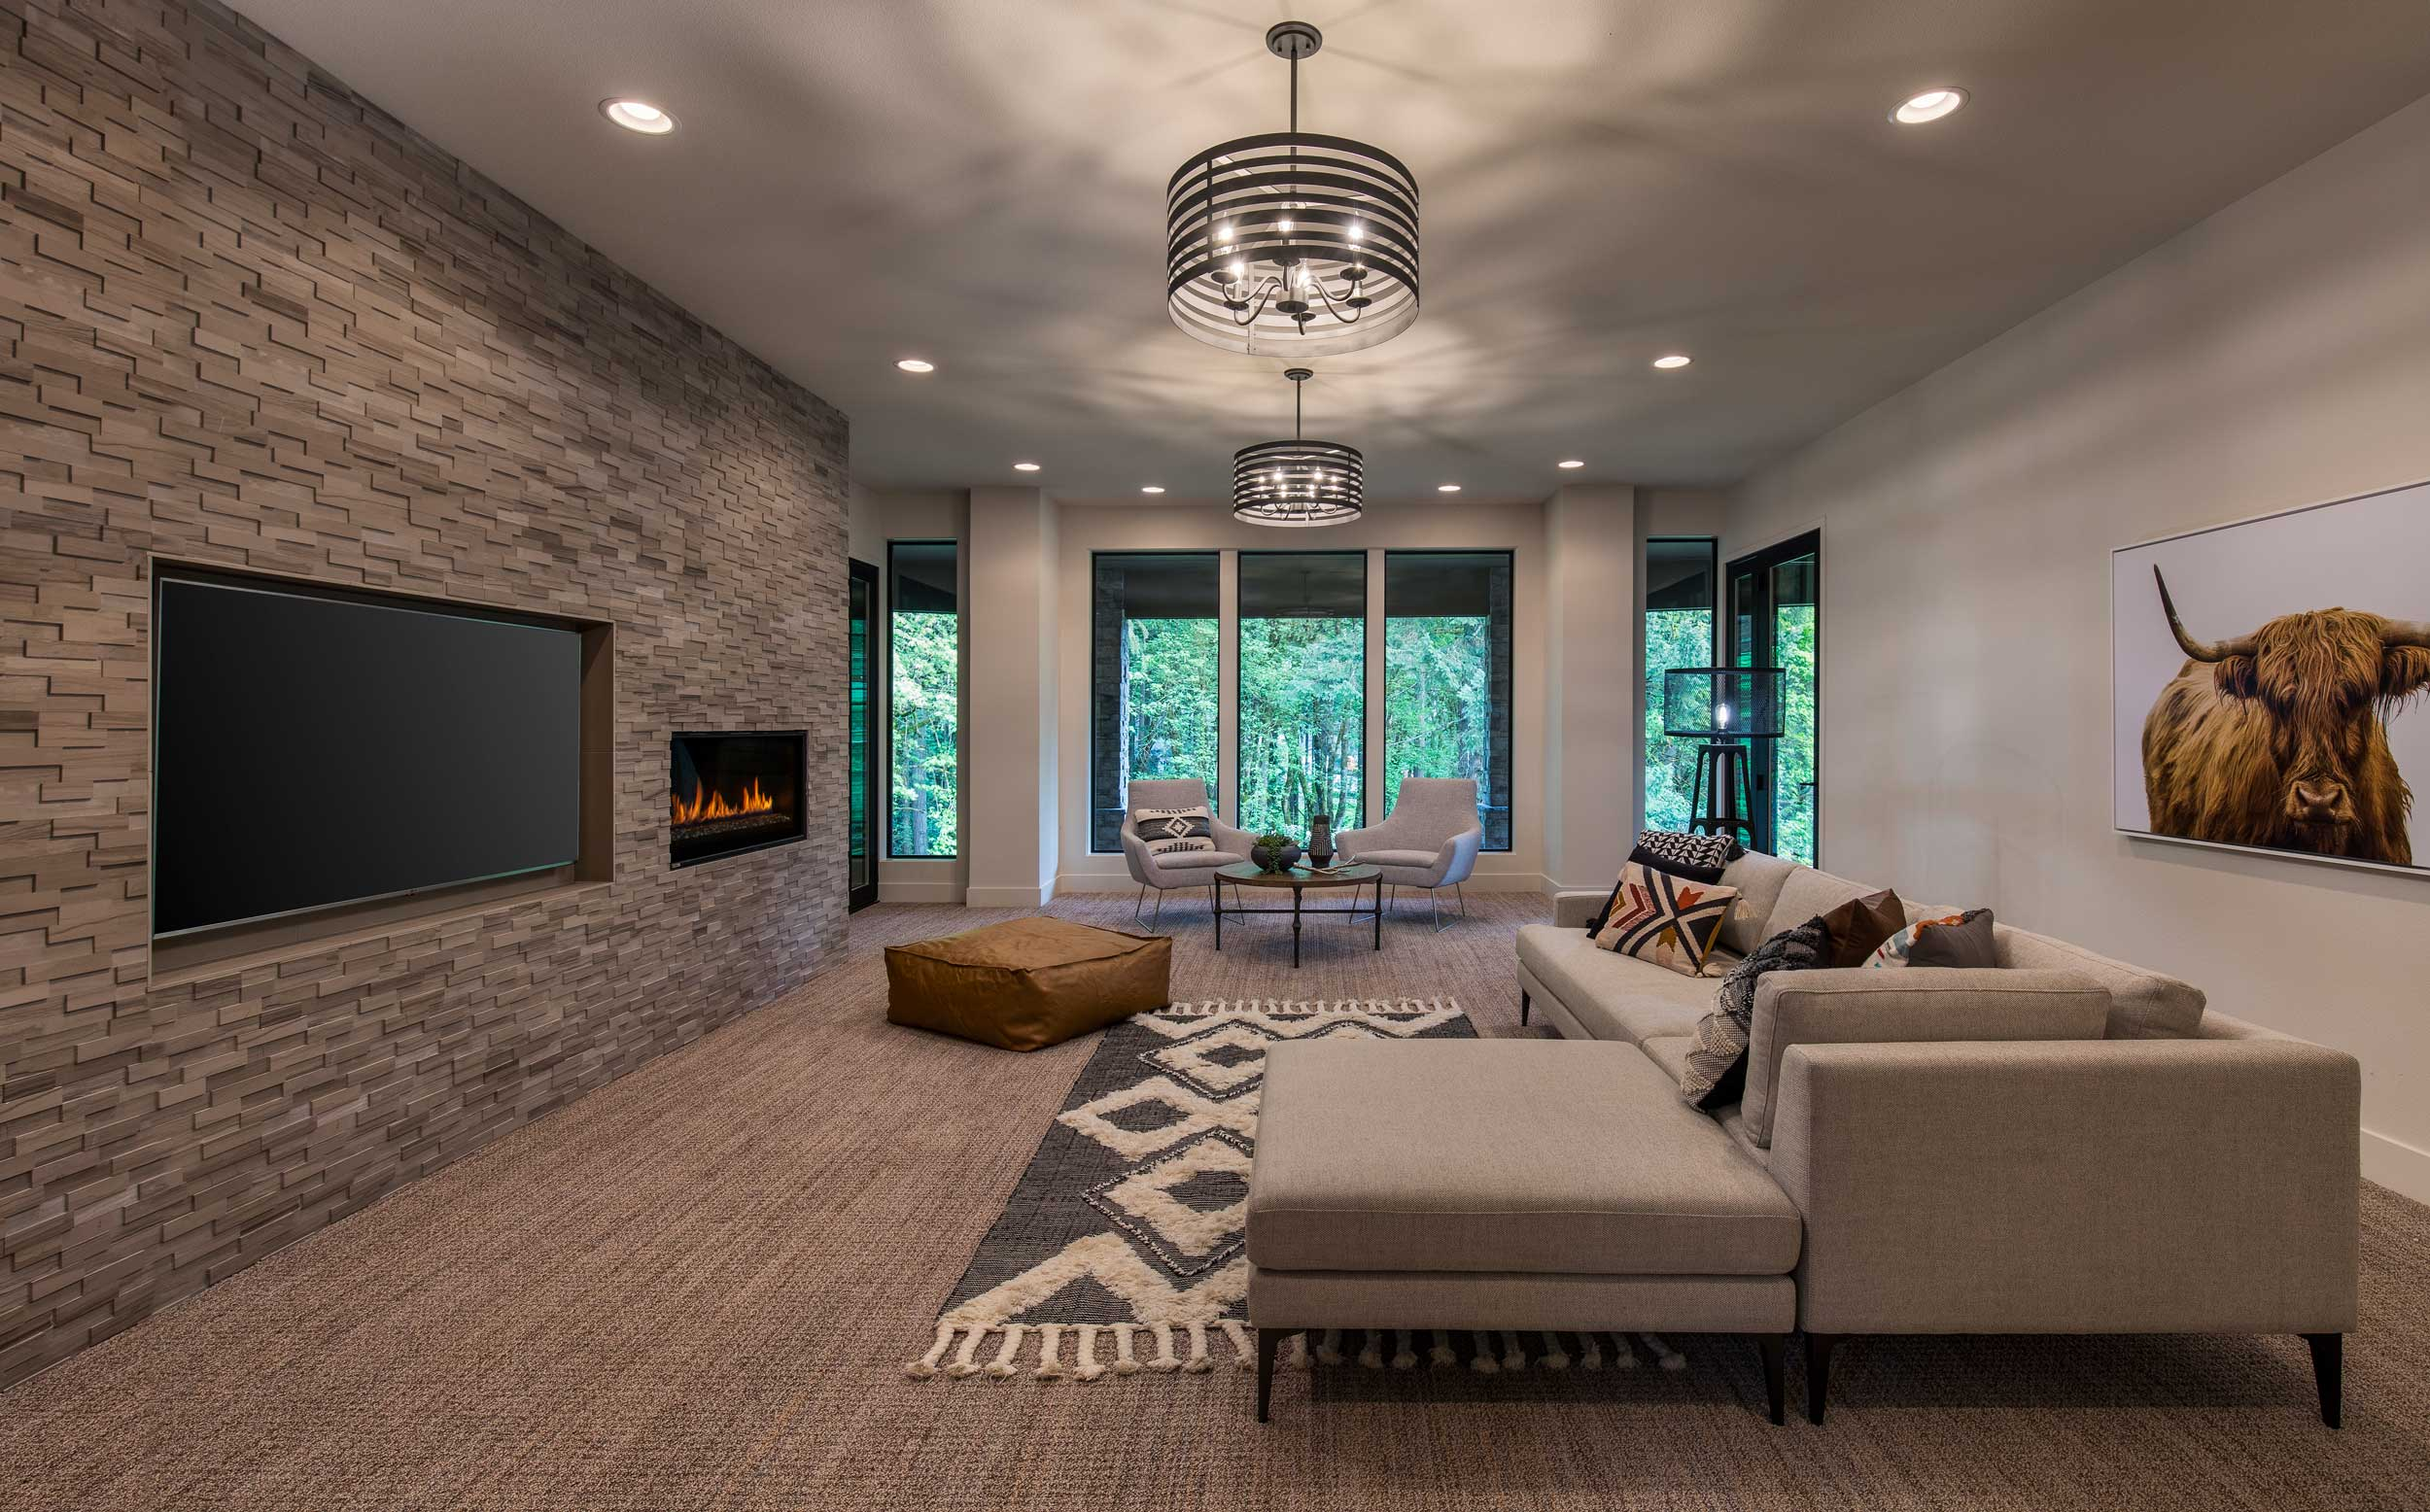 Basement media room with modern TV and fireplace wall.